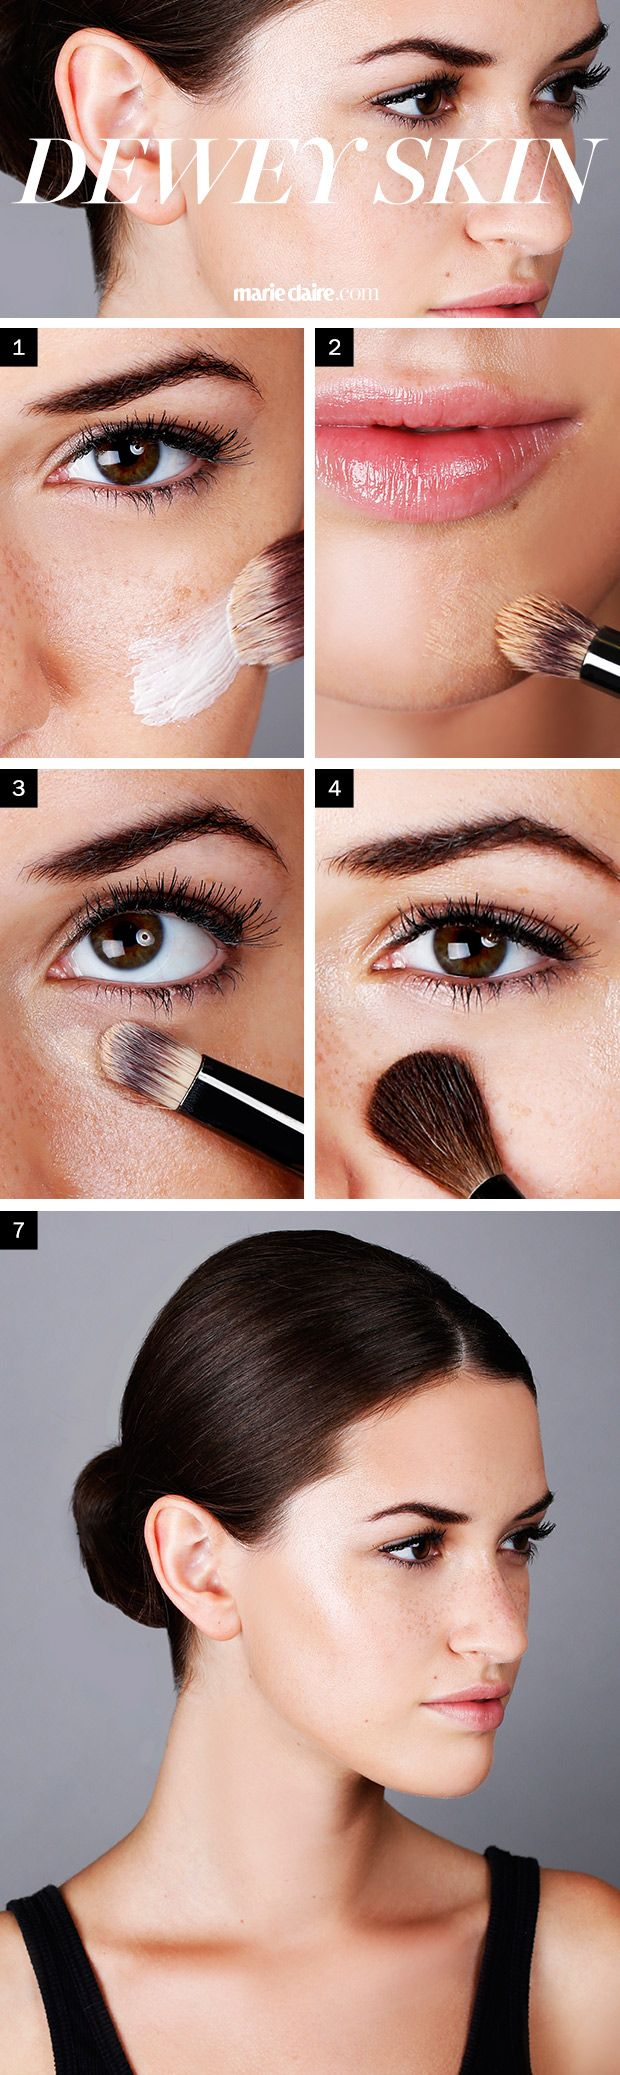 Makeup How-to: 5 Steps to Dewy Skin for Summer | MarieClaire.com